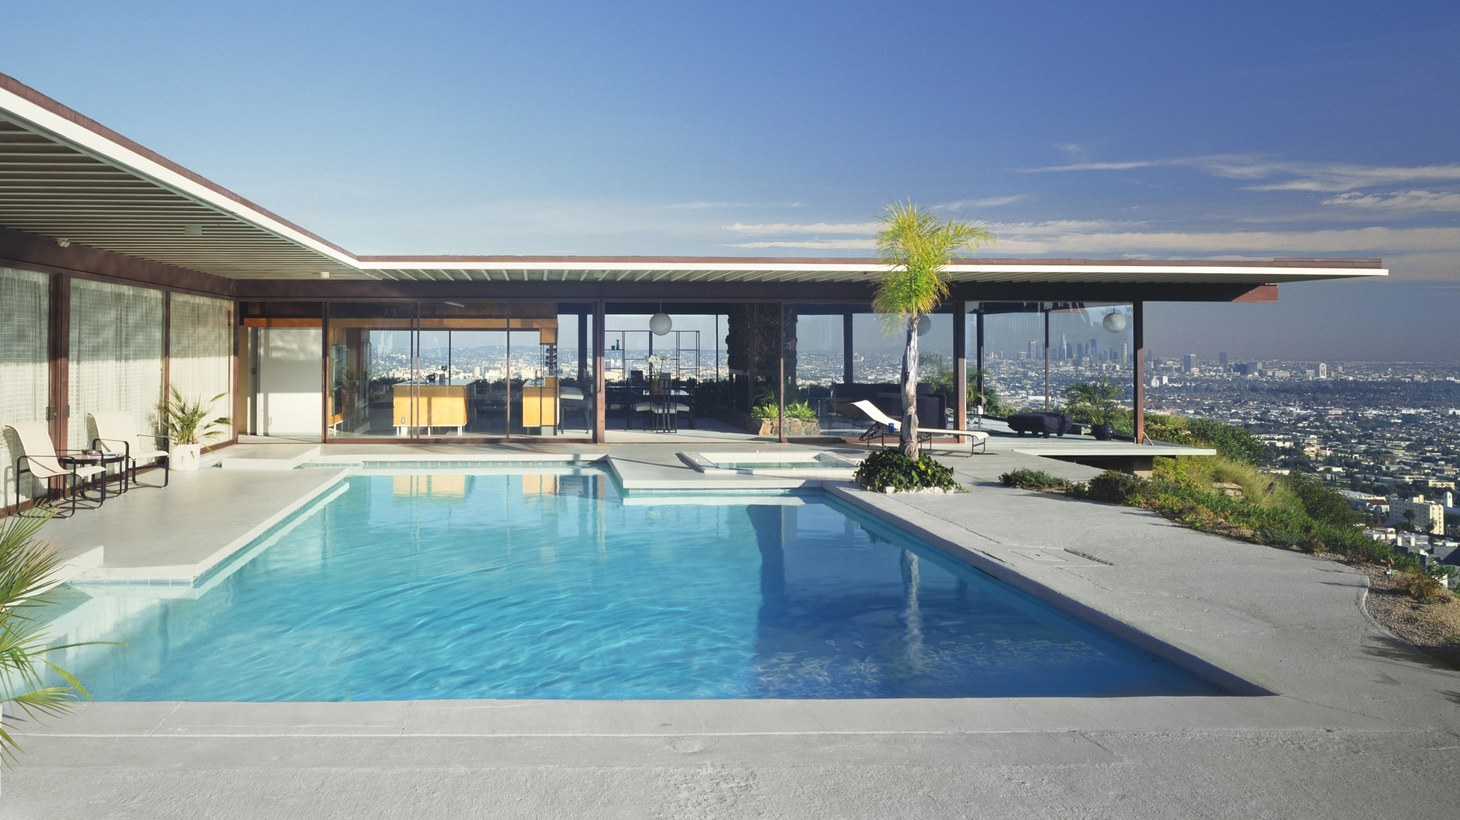 The iconic Stahl House has one of the most celebrated modern pools in Los Angeles. Designed by architect Pierre Koenig in 1960, it is known as Case Study House 22.